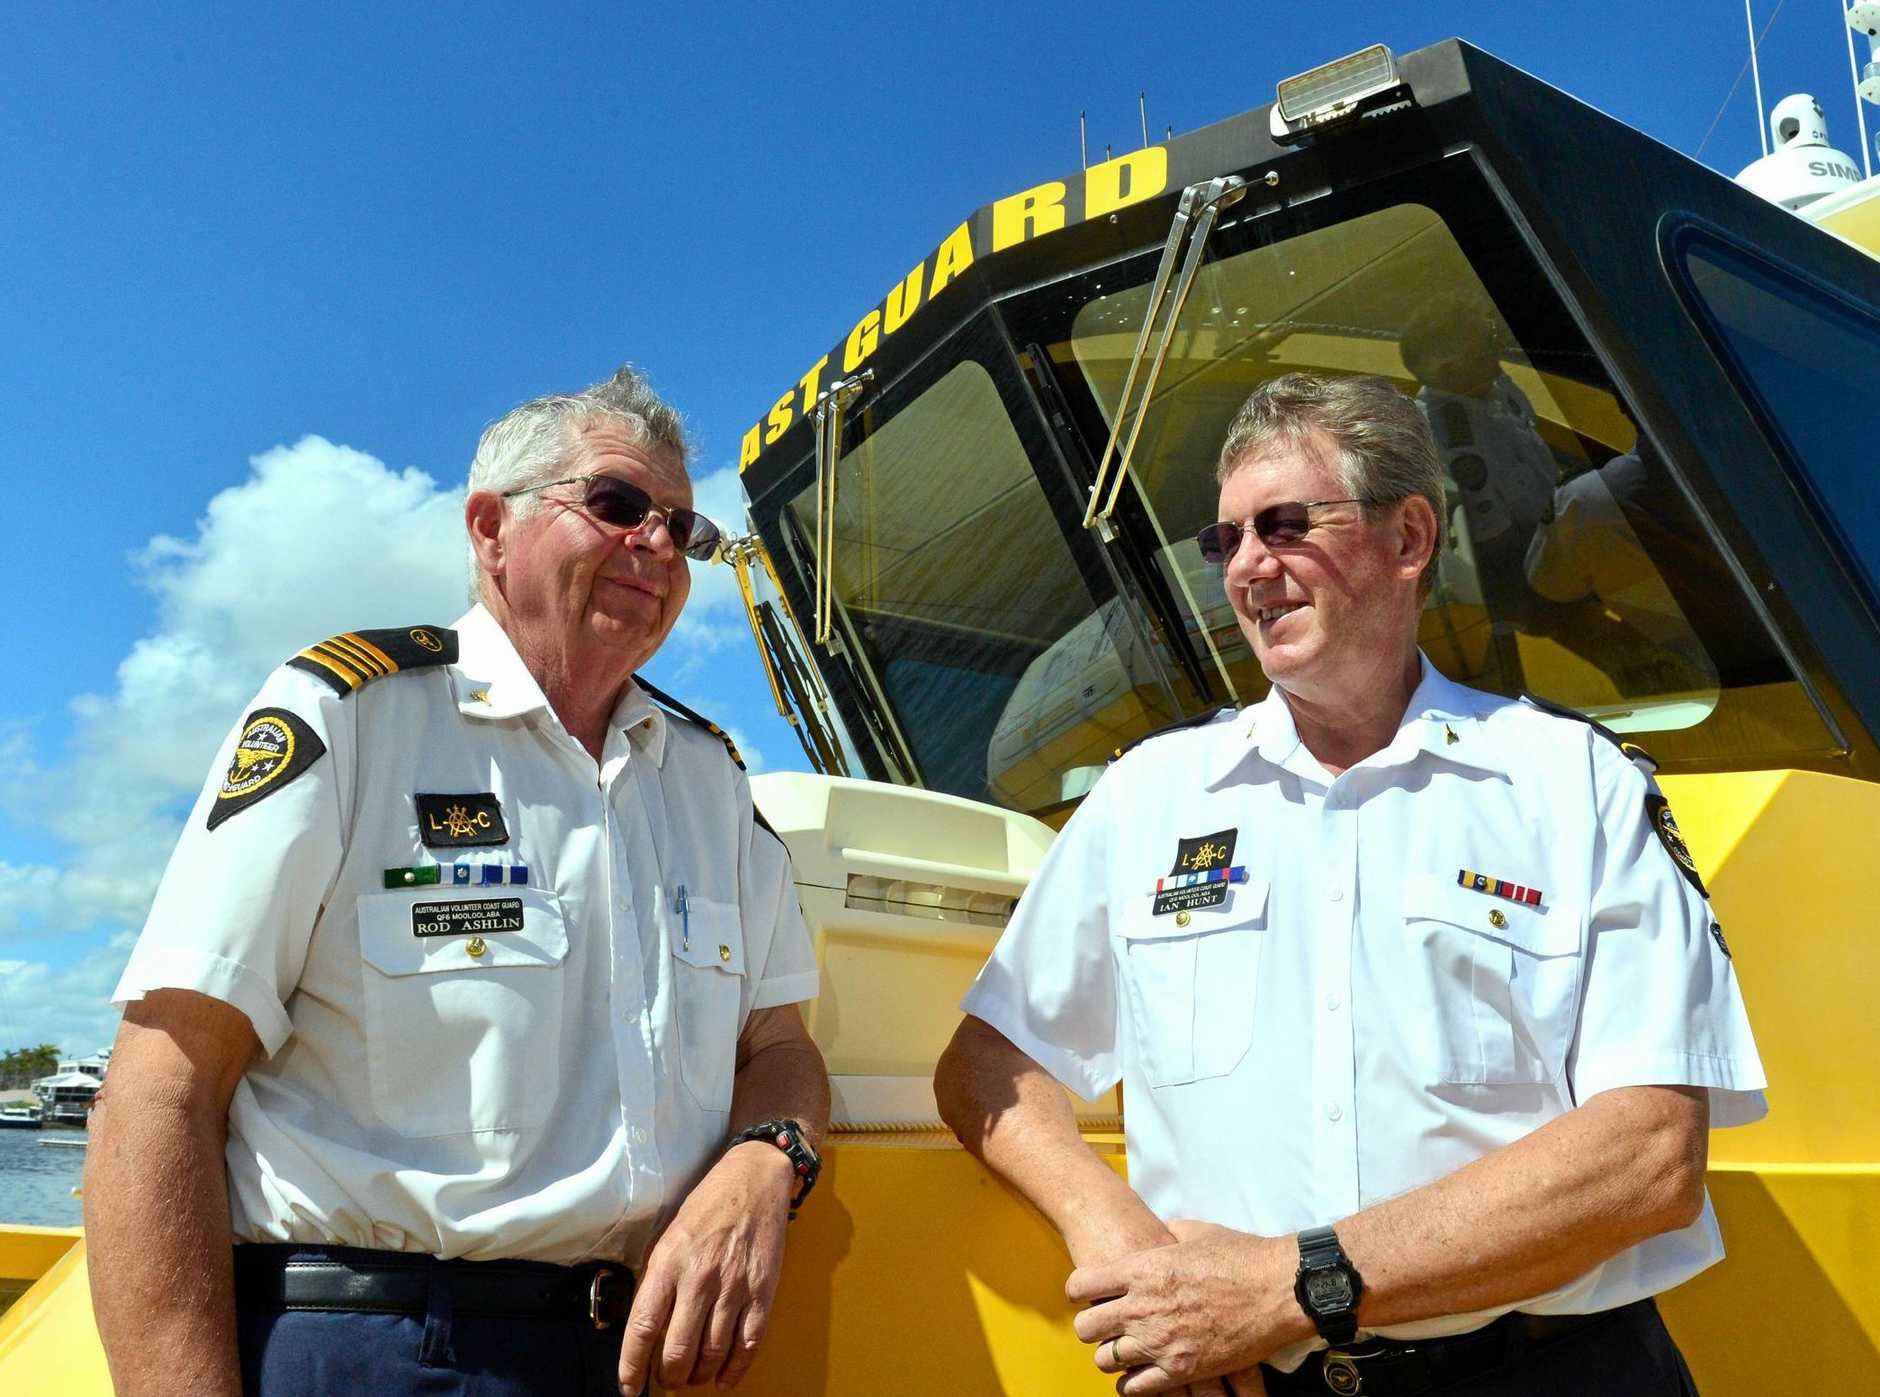 Stand down orders made earlier this year against Coast Guard Mooloolaba senior skippers Rod Ashlin and Ian Hunt have been rescinded.